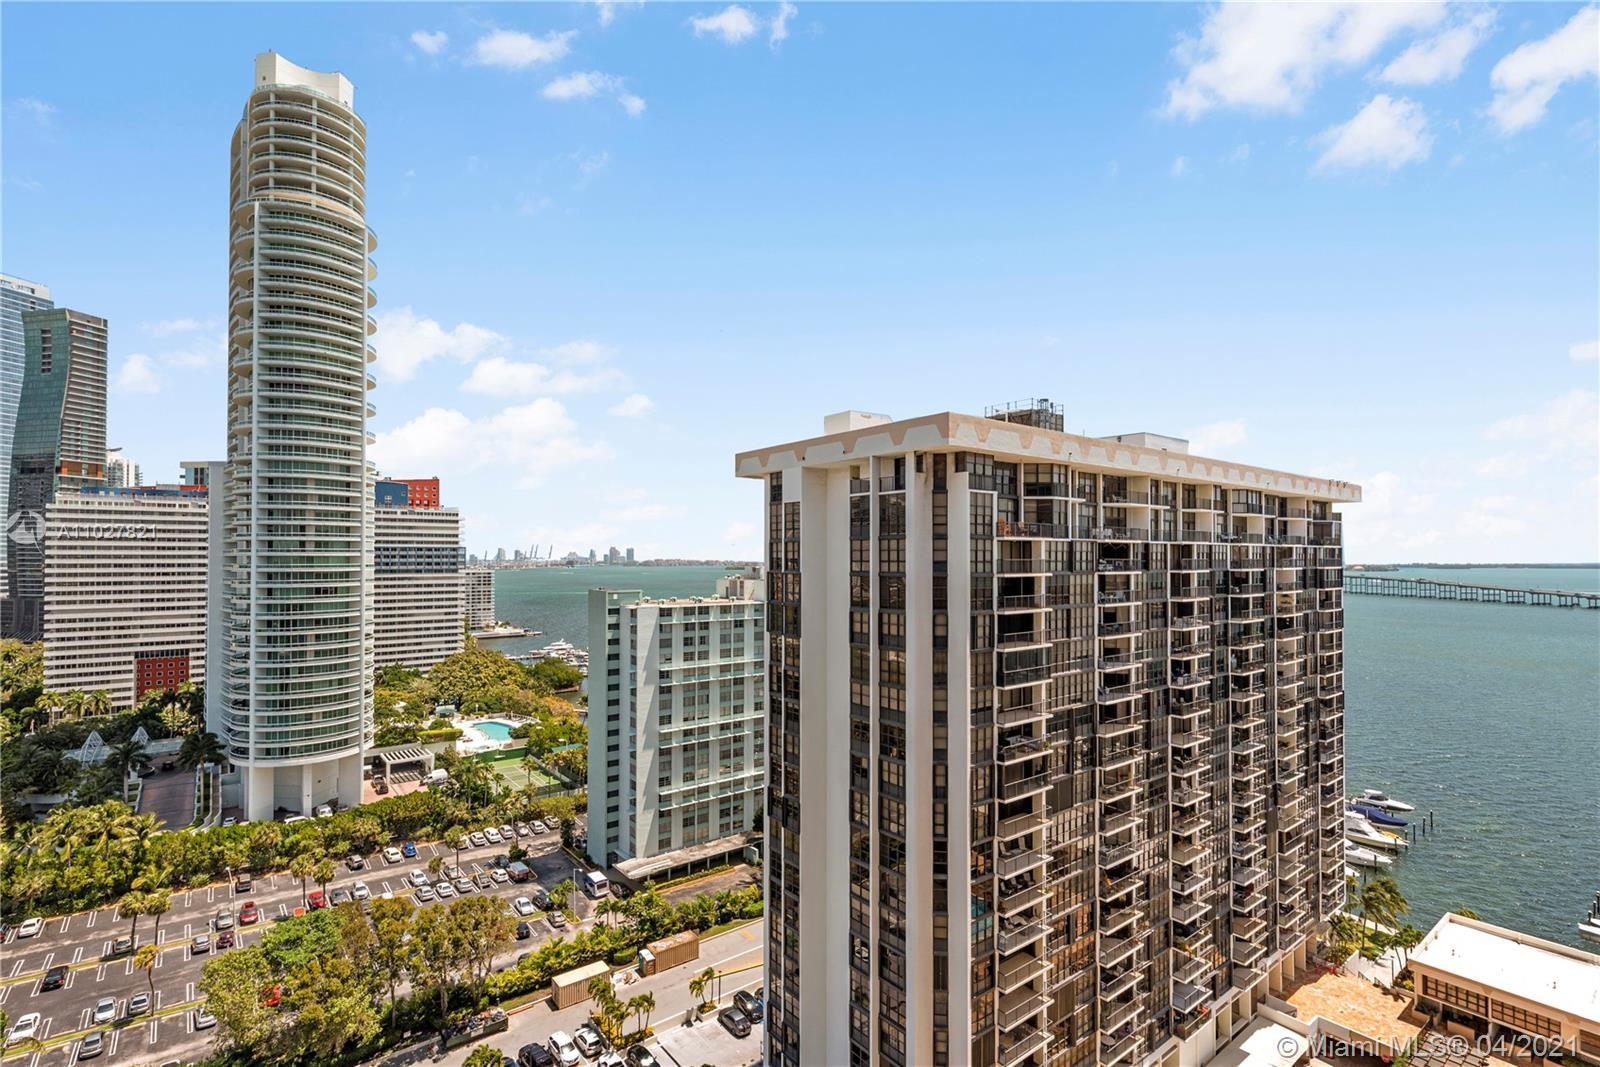 Renovated 2Bedroom/2Bathroom condominium with a beautiful view of Downtown Miami and Biscayne Bay.